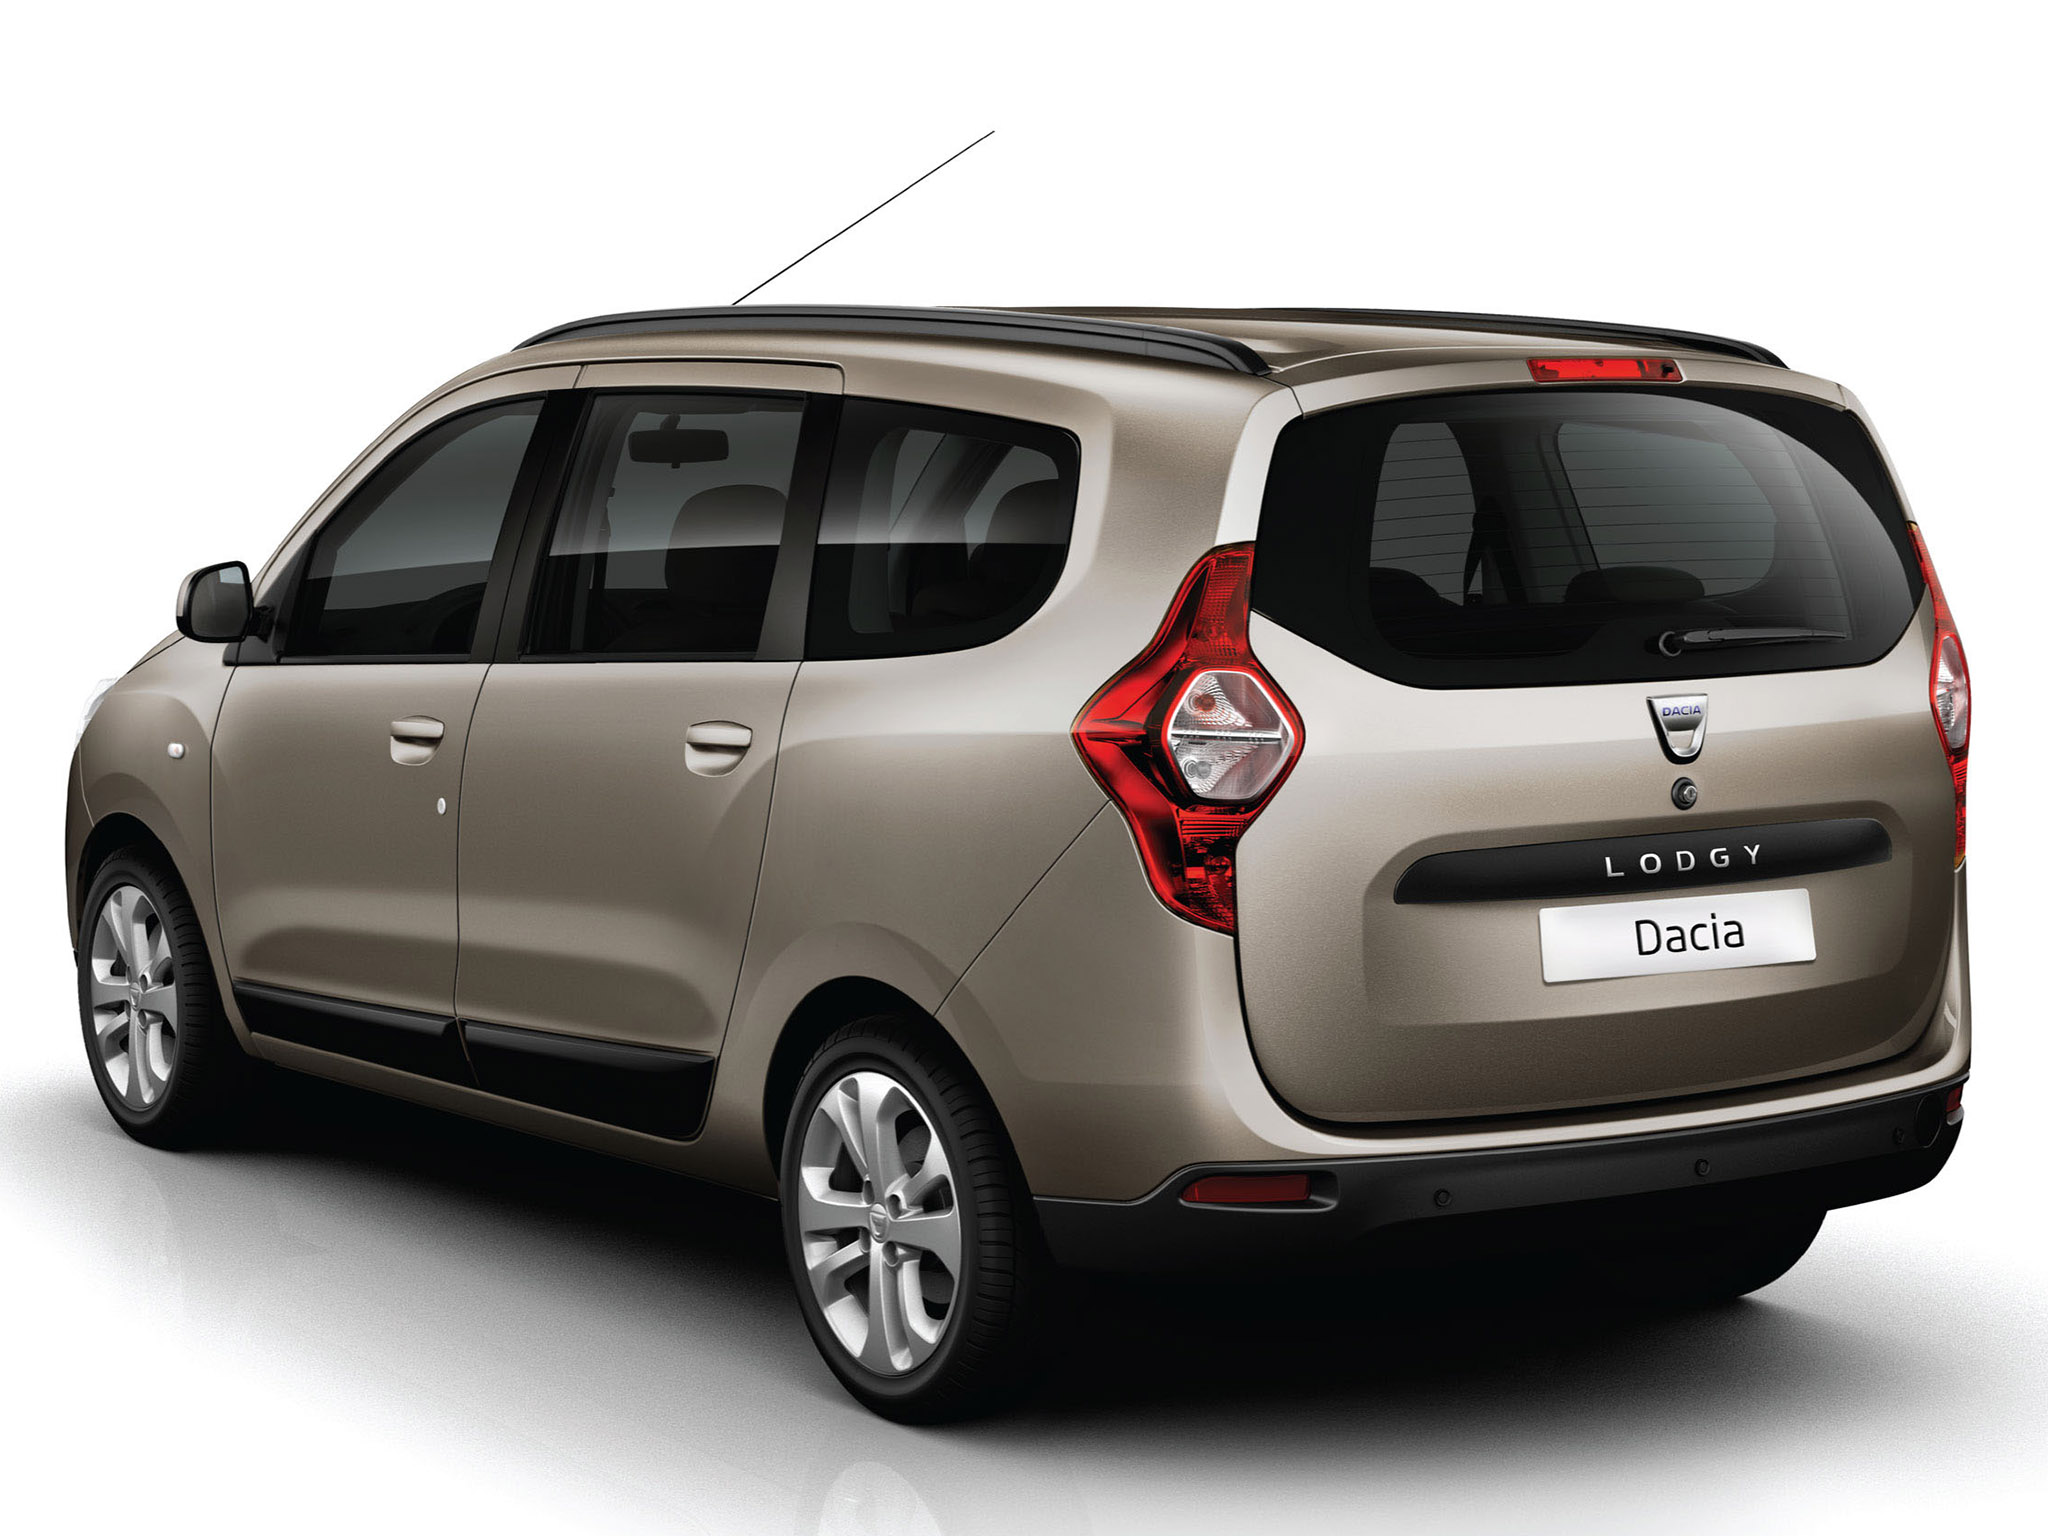 dacia lodgy 2012 dacia lodgy 2012 photo 01 car in pictures car photo gallery. Black Bedroom Furniture Sets. Home Design Ideas